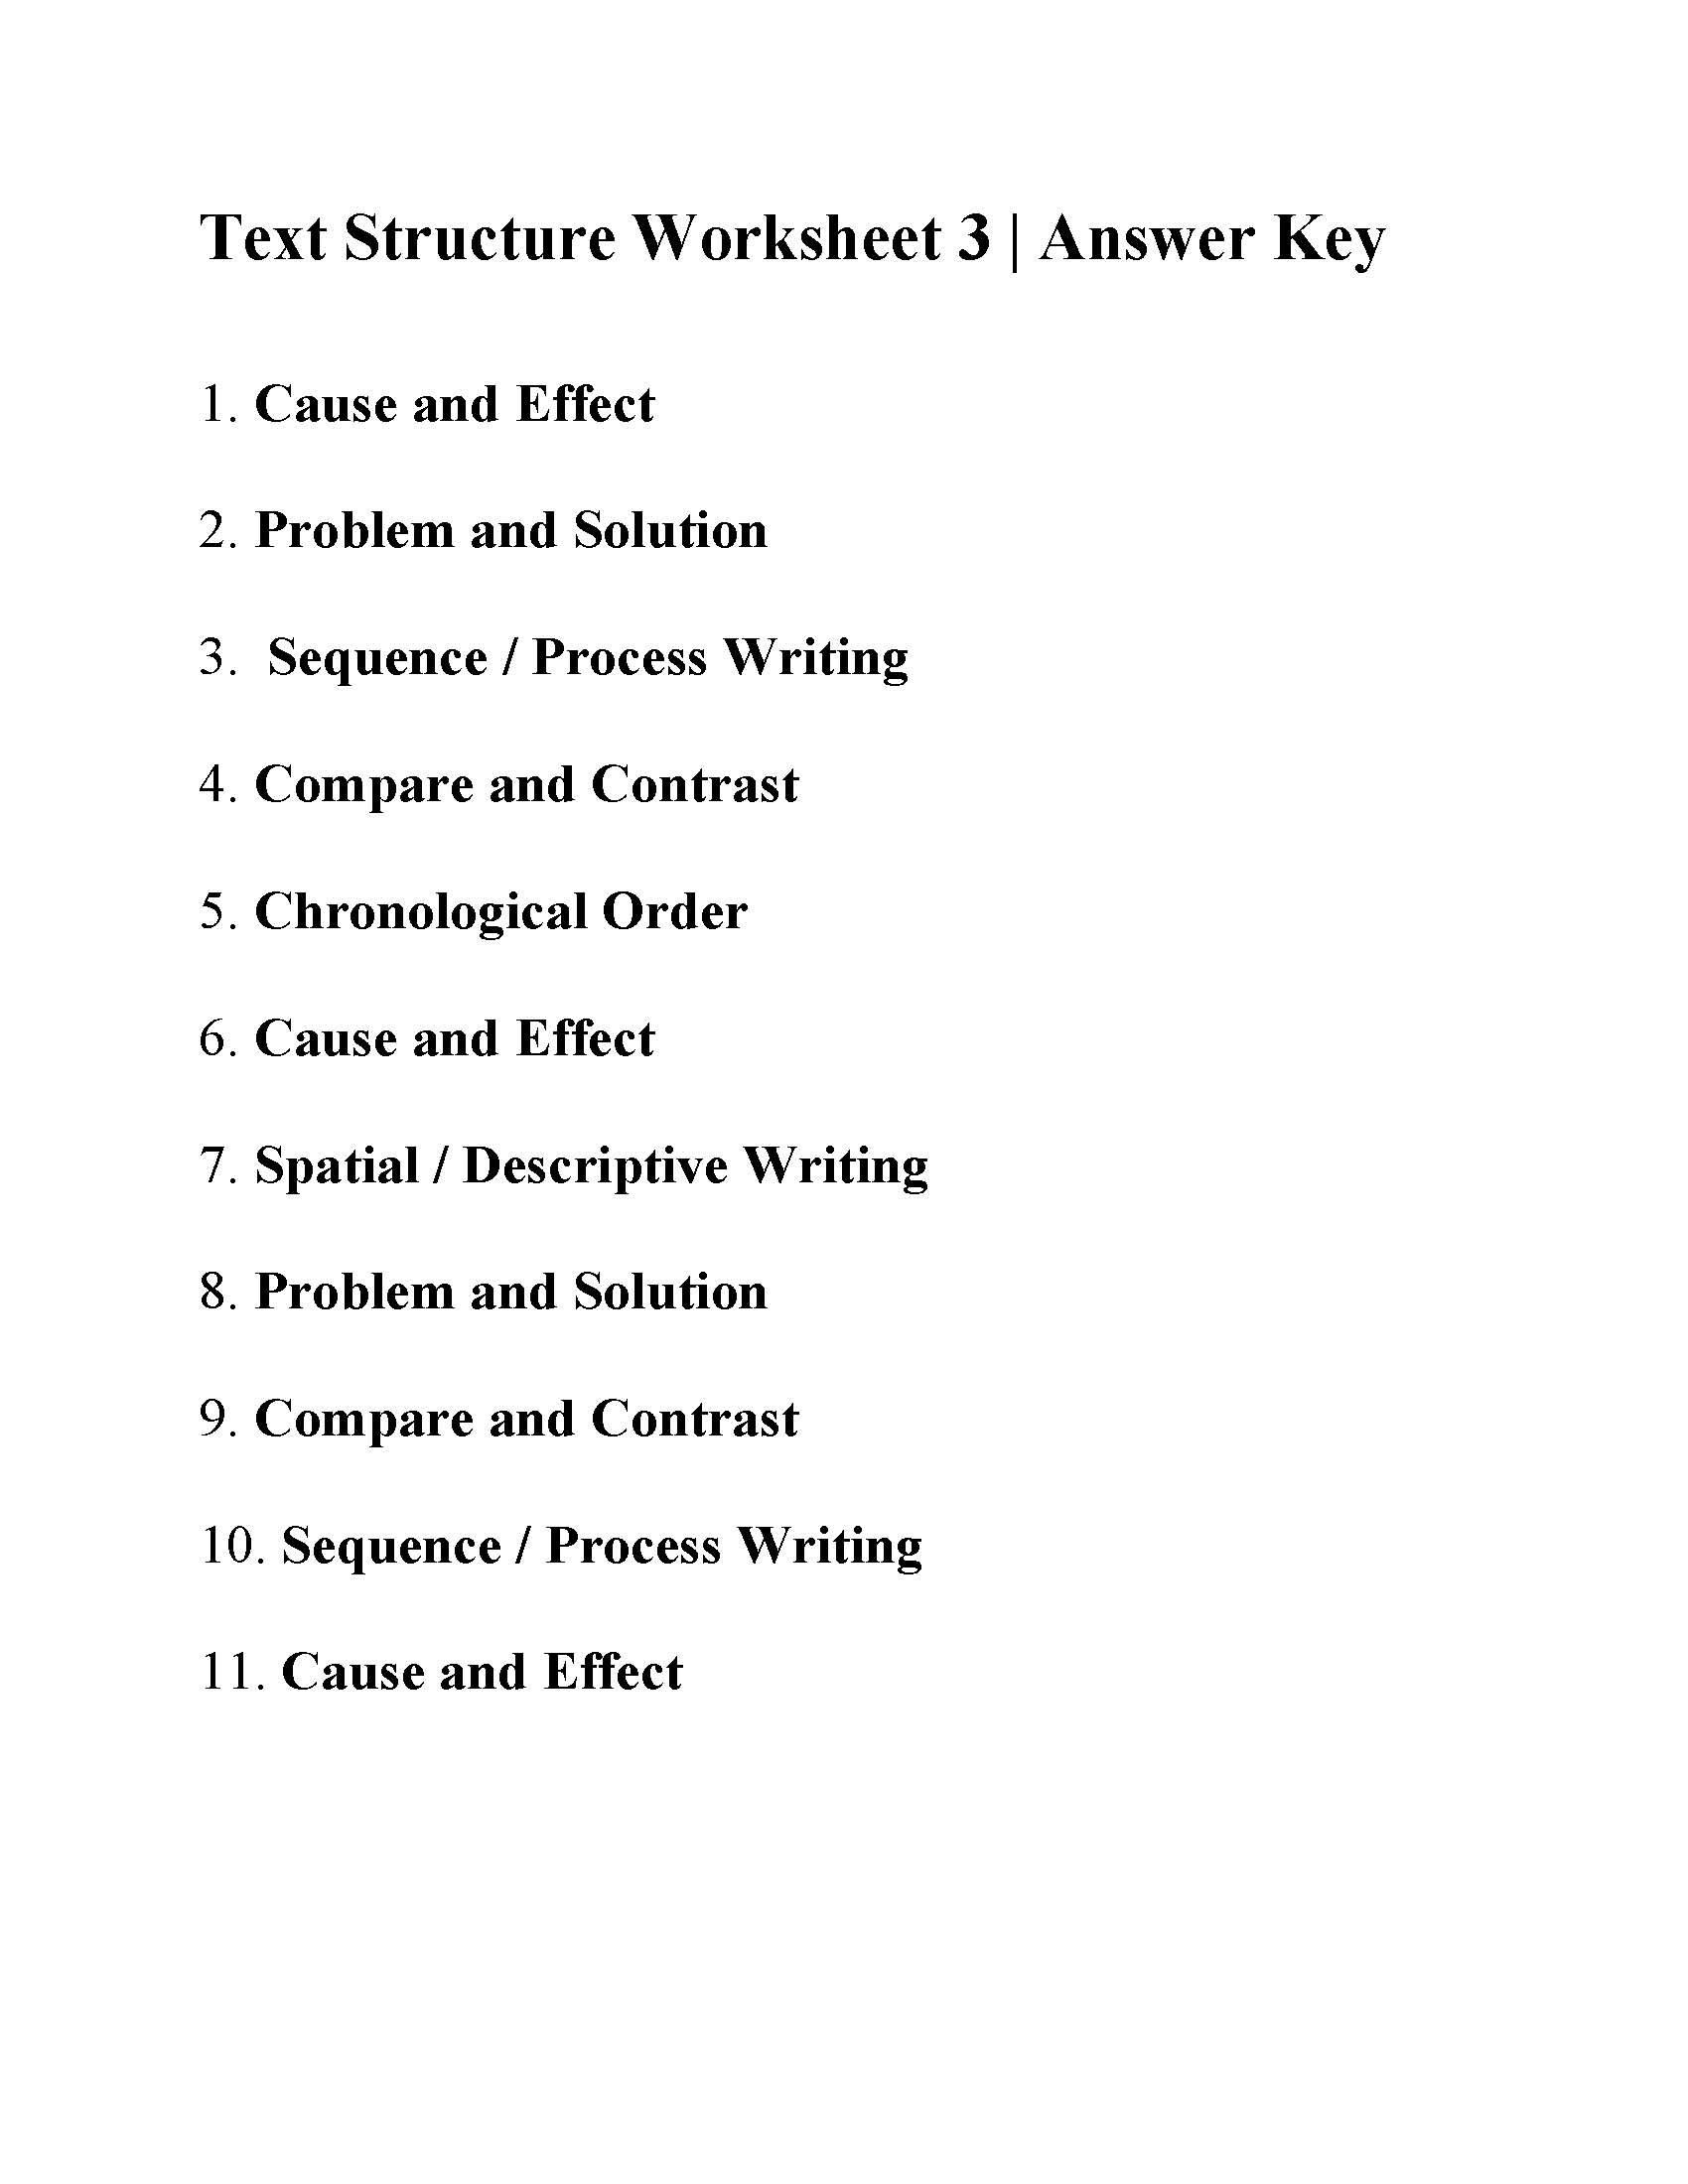 Types Of Conflict Worksheet This is the Answer Key for the Text Structure Worksheet 3